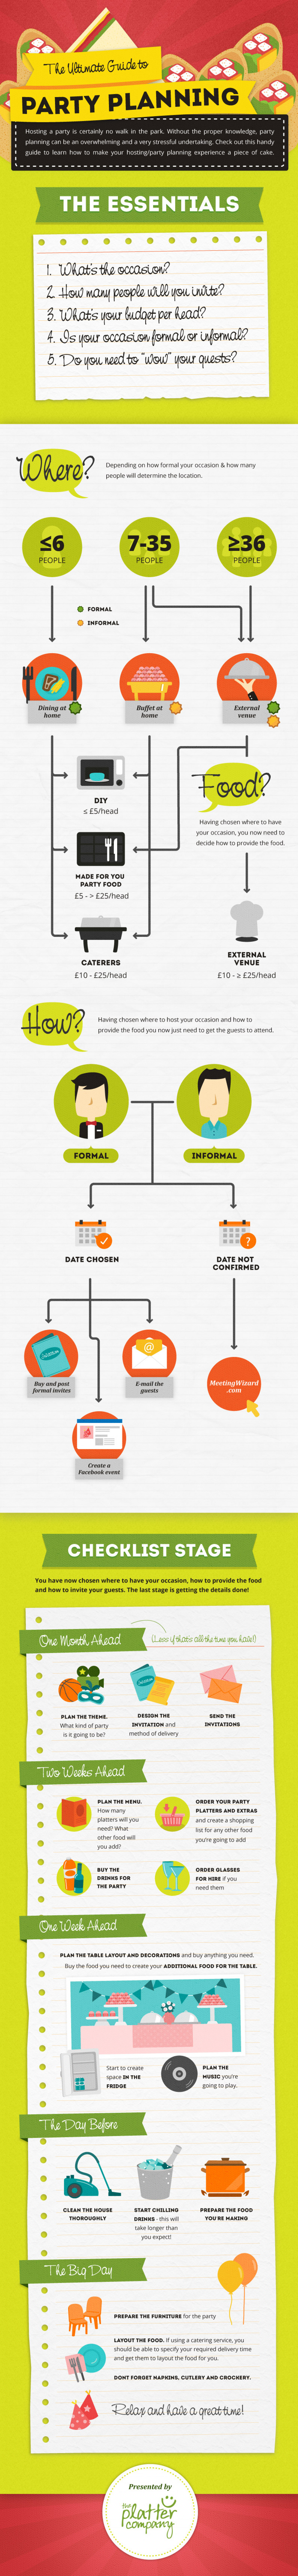 The Ultimate Guide to Party Planning Infographic